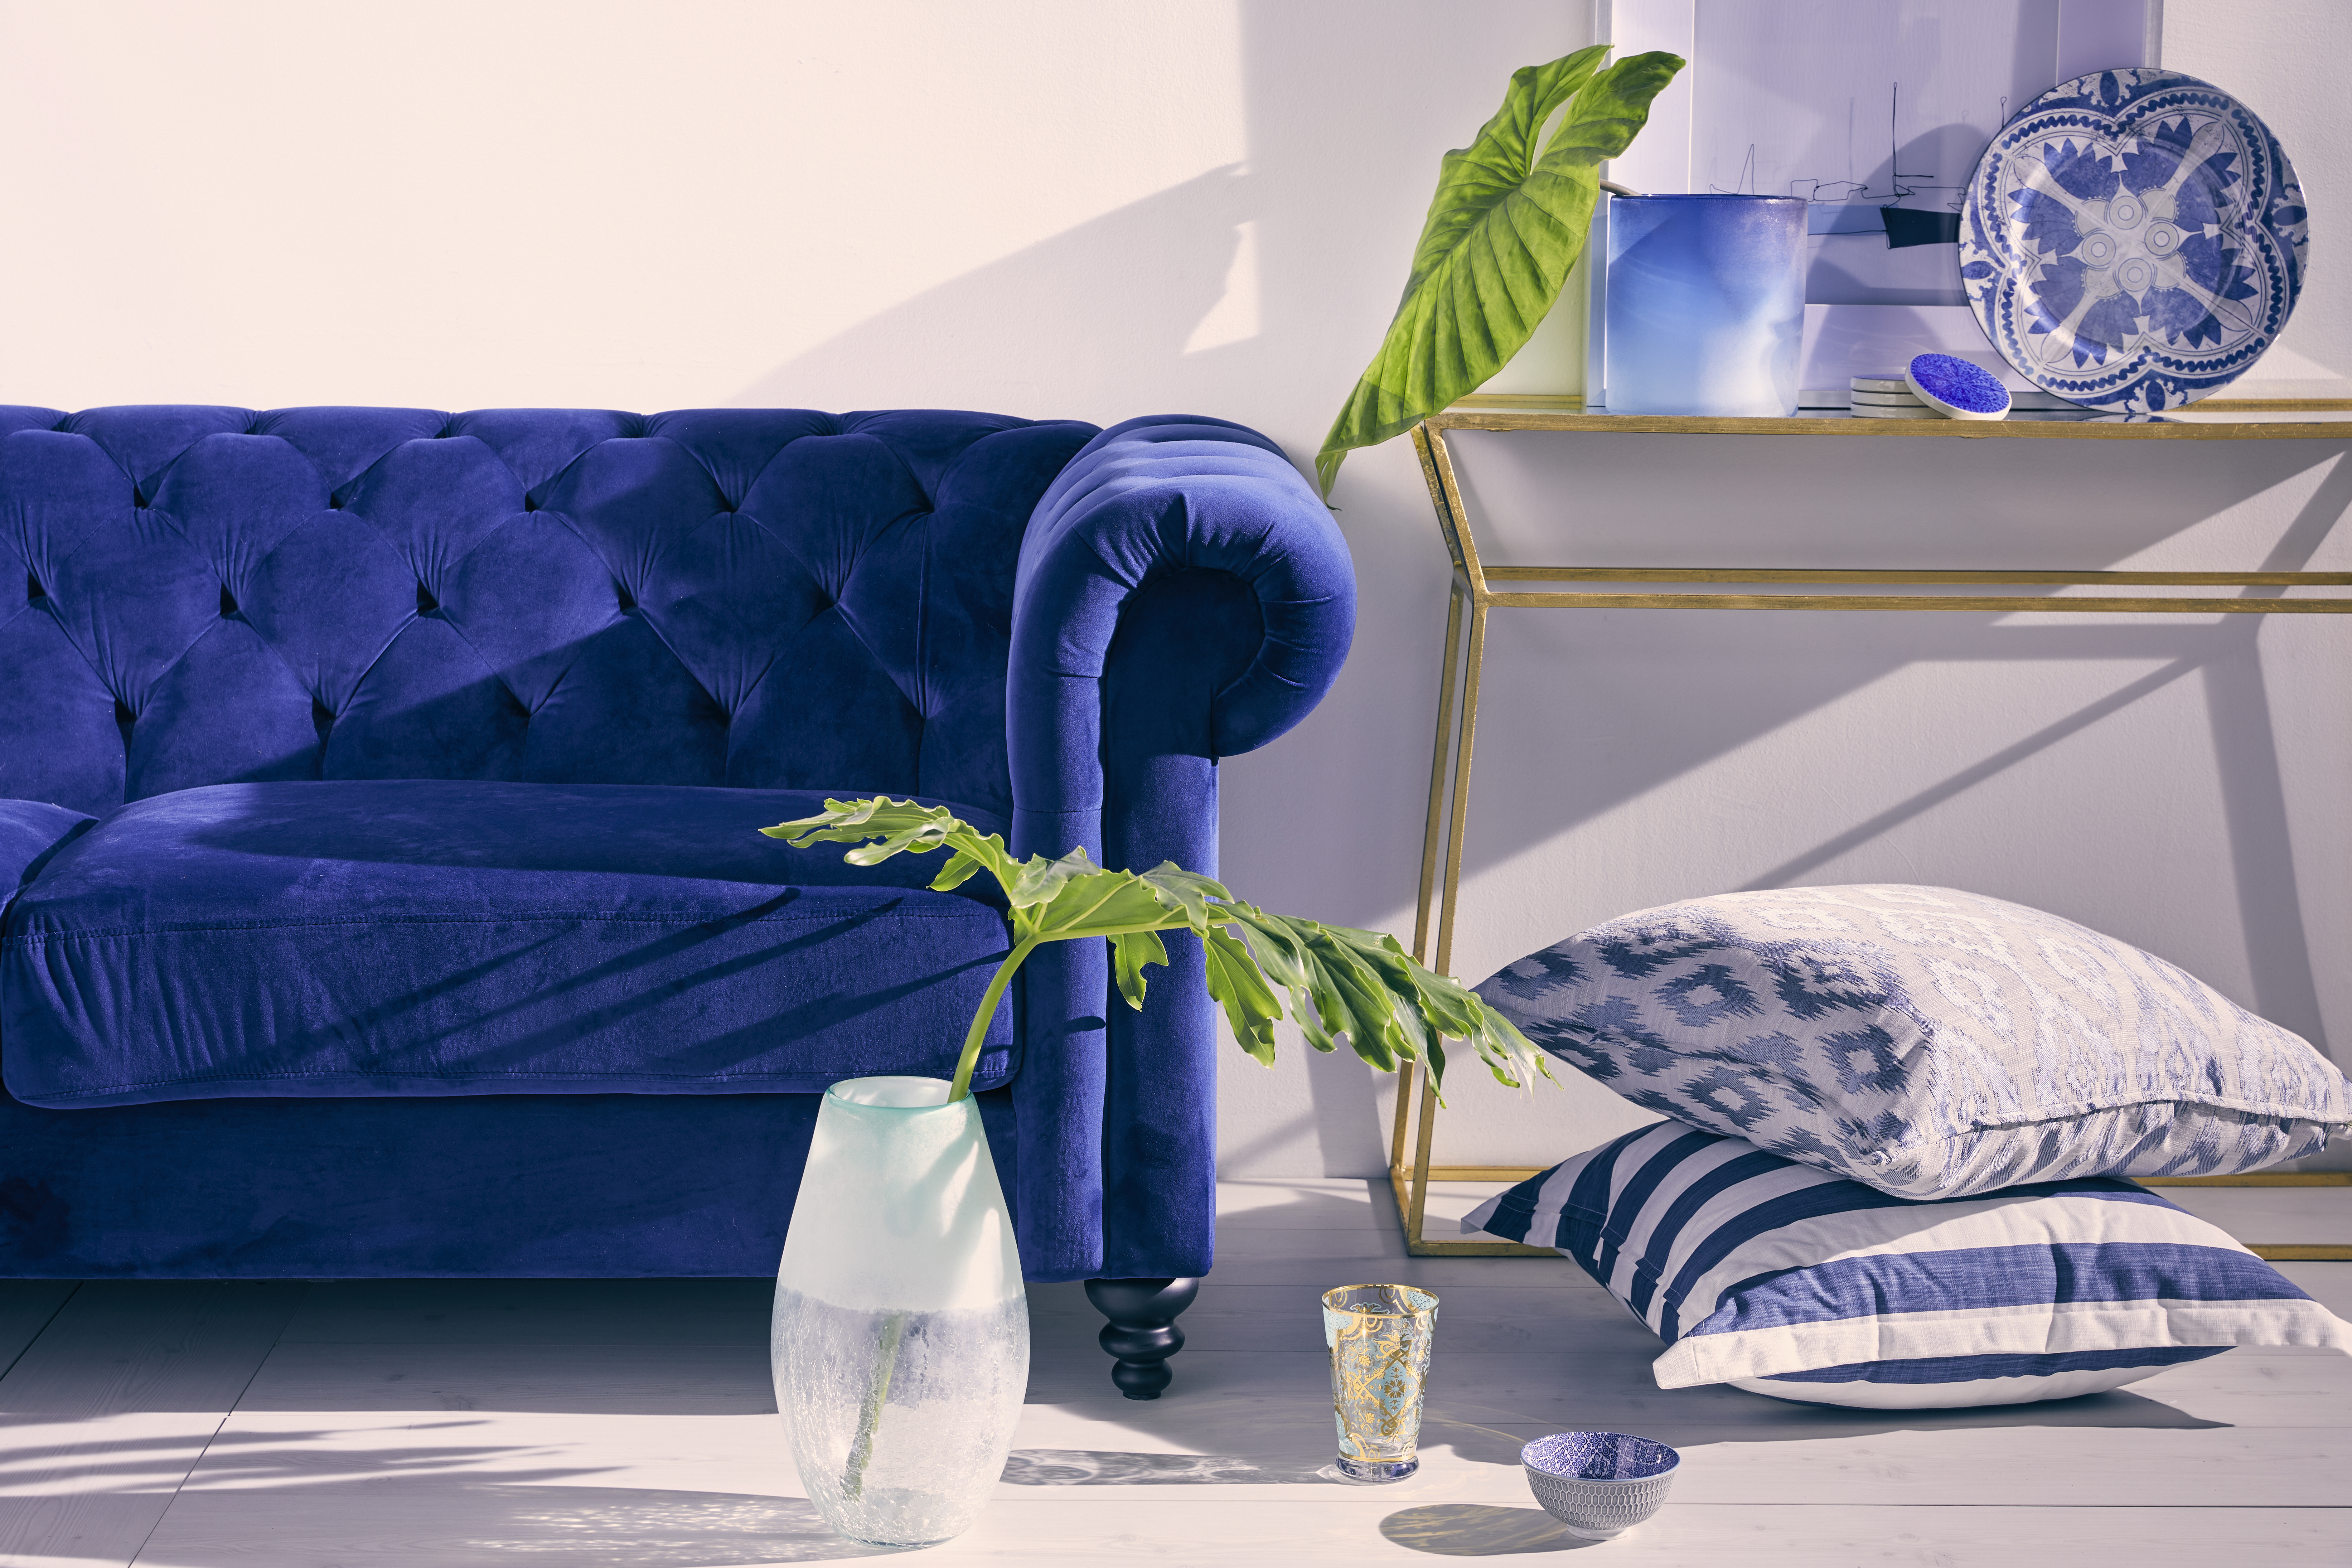 HOW TO CARE FOR YOUR VELVET FURNITURE